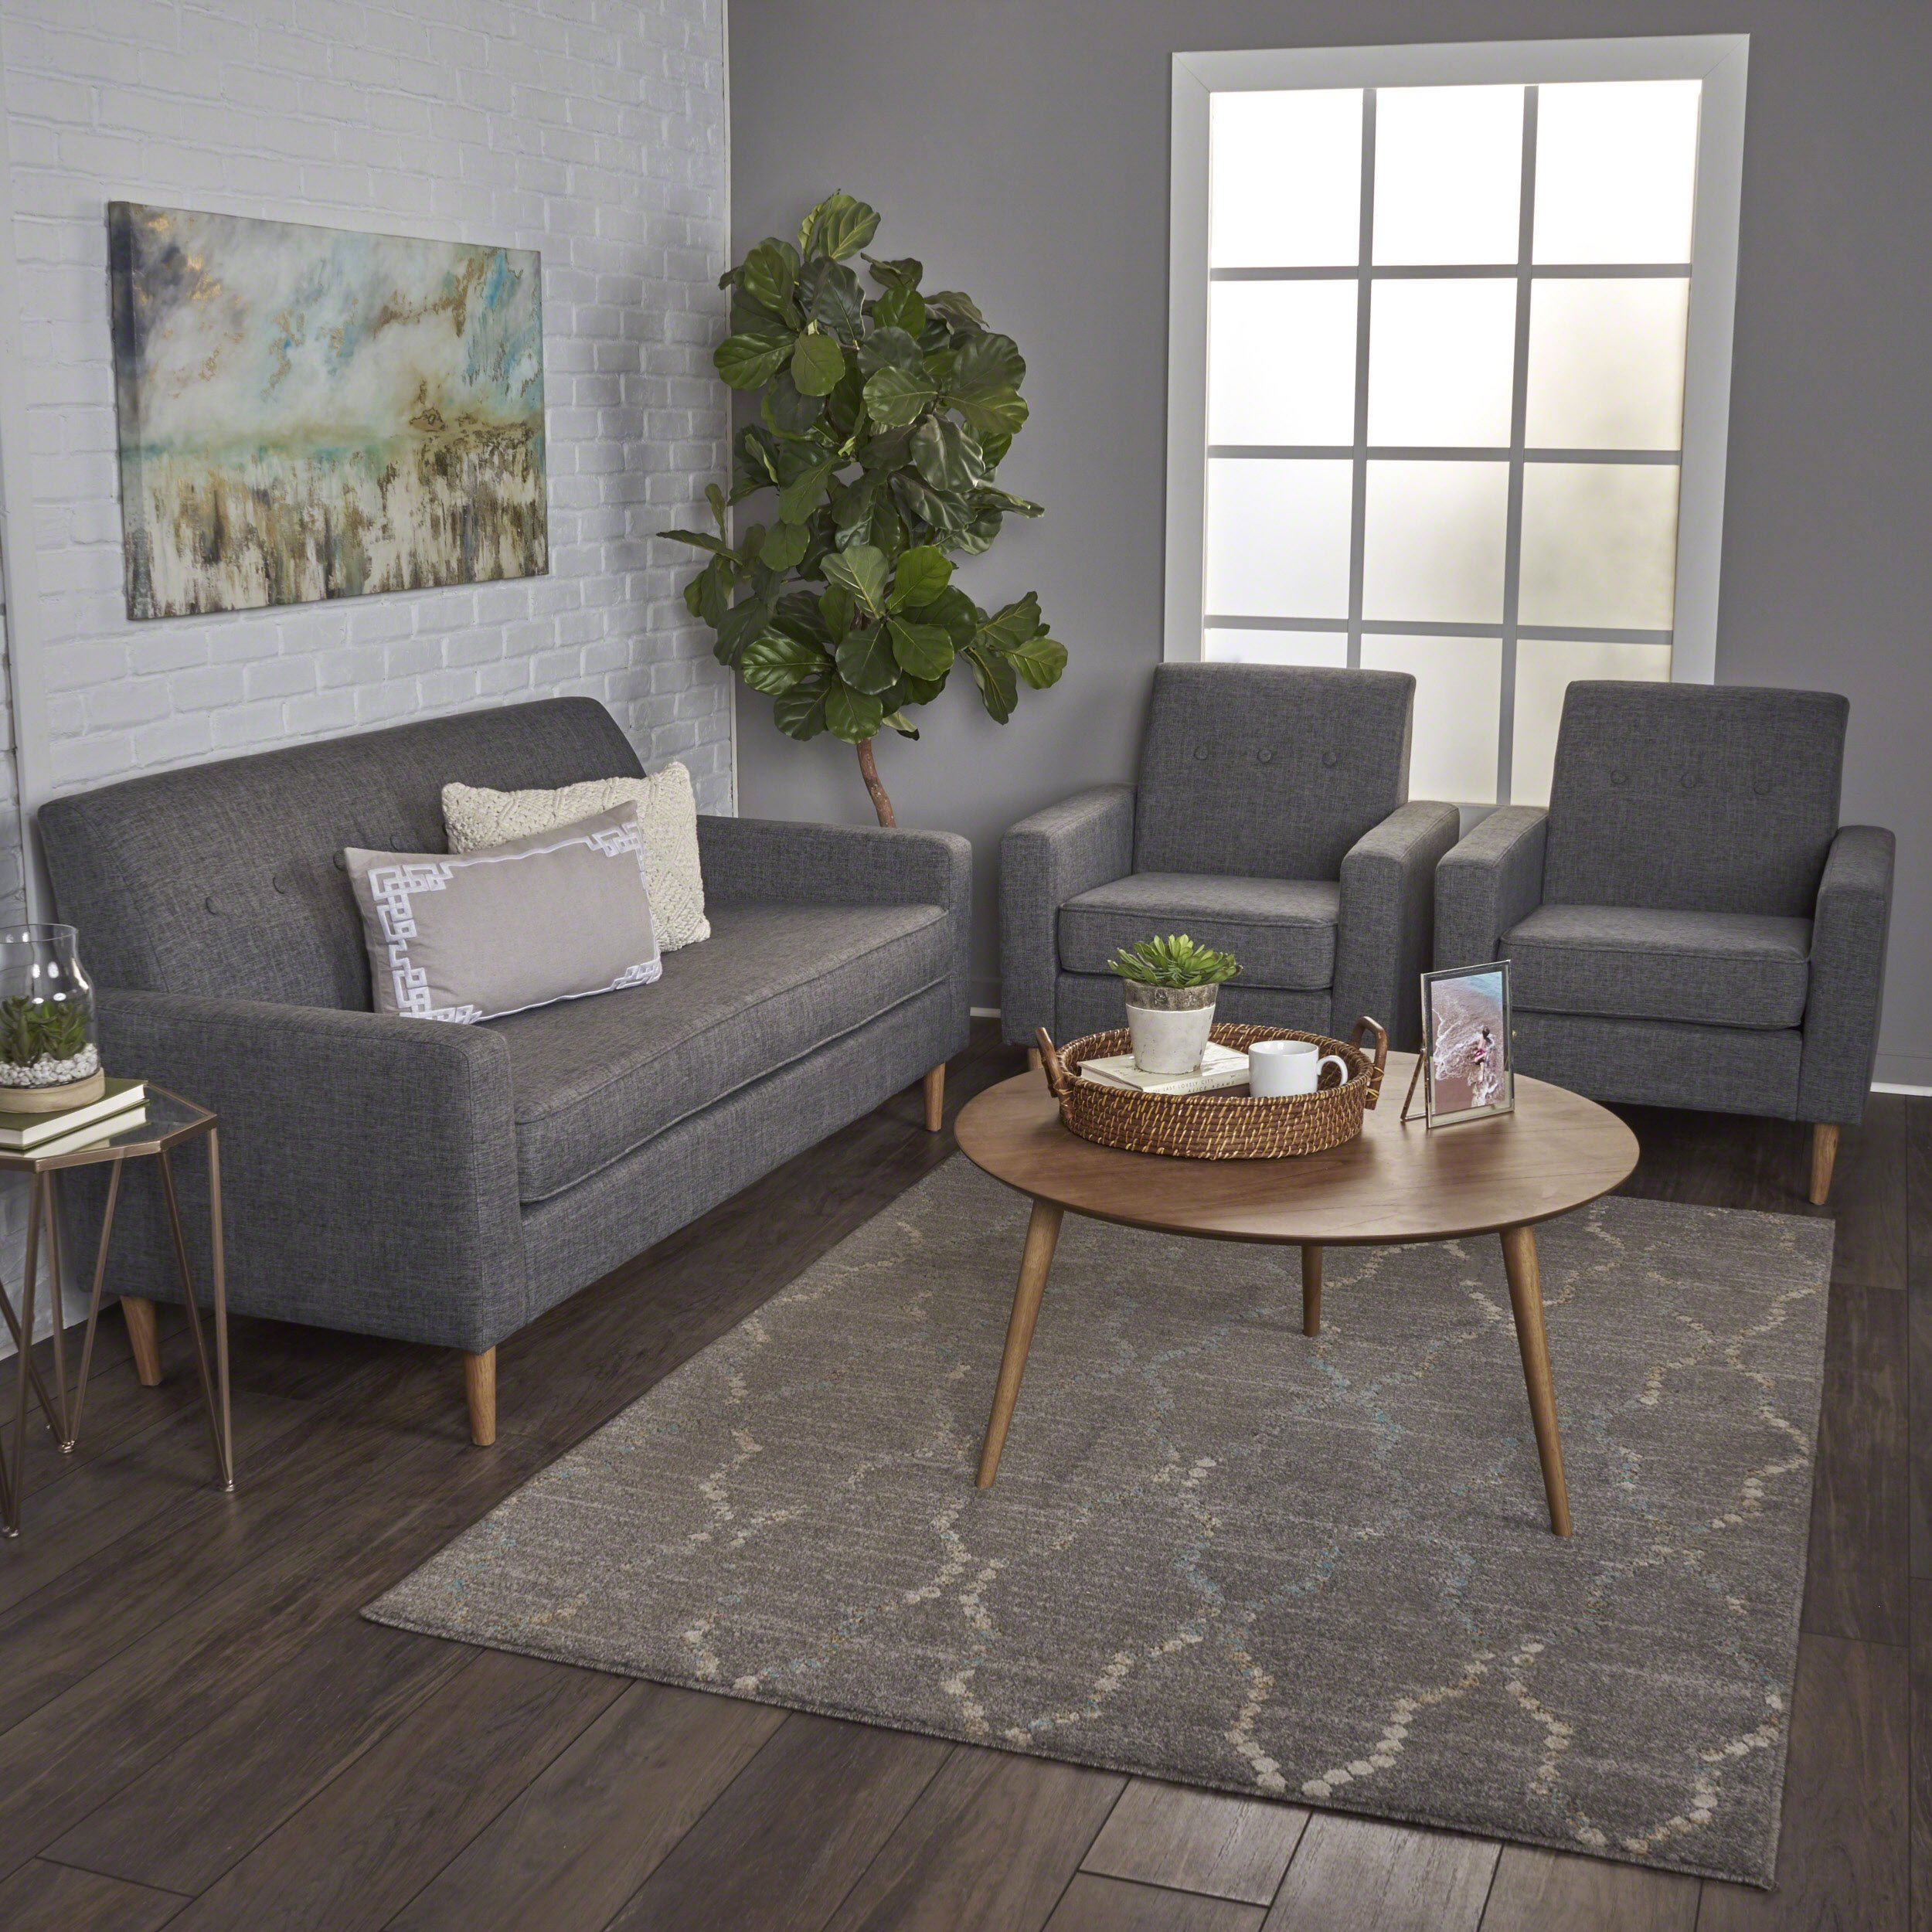 Christopher Knight Home Stratford Mid Century Modern Grey Fabric Sofa and Club Chairs Set by Christopher Knight Home